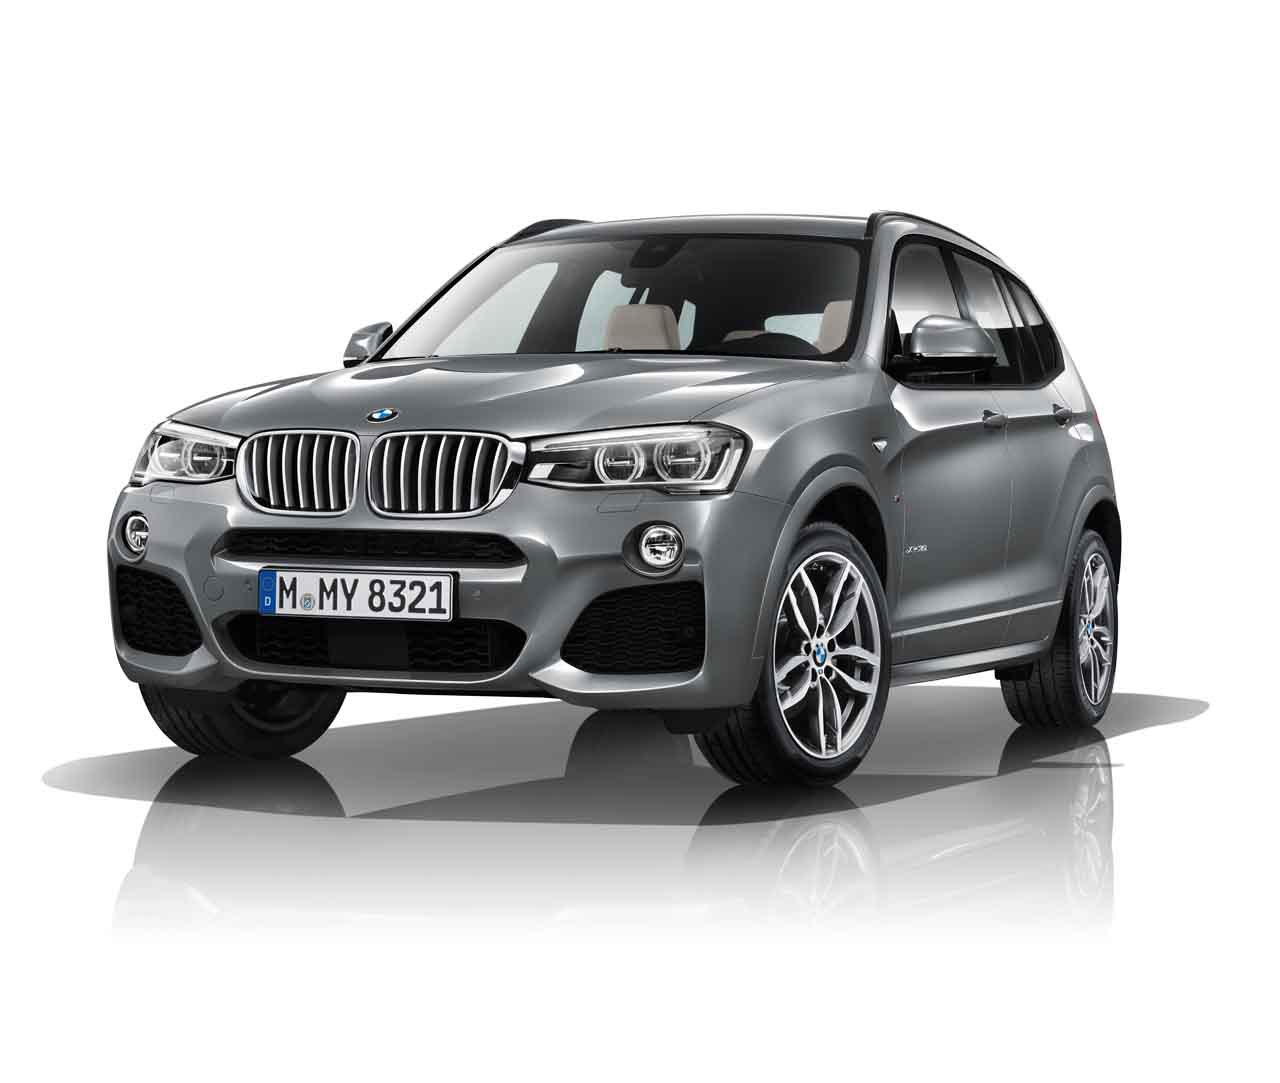 BMW X3 xDrive30d M Sport launched in India, price Rs 60 lakh